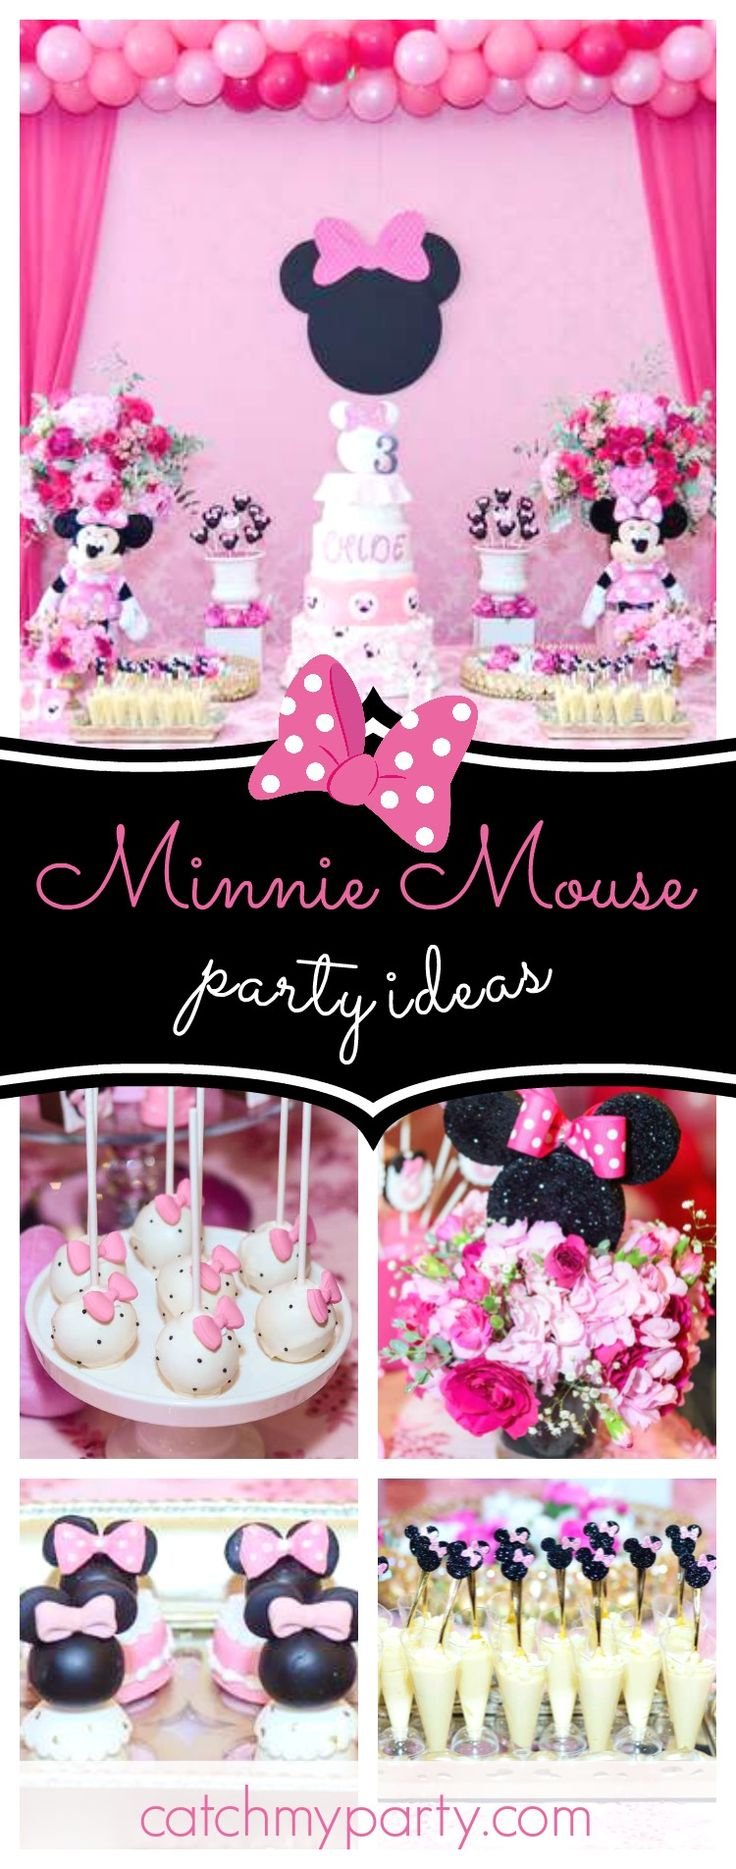 Take a look at this gorgeous Minnie Mouse birthday party! The pink dessert table is stunning!! See more party ideas and share yours at CatchMyParty.com  #partyideas #minnie #minniemouse #girlbirthday